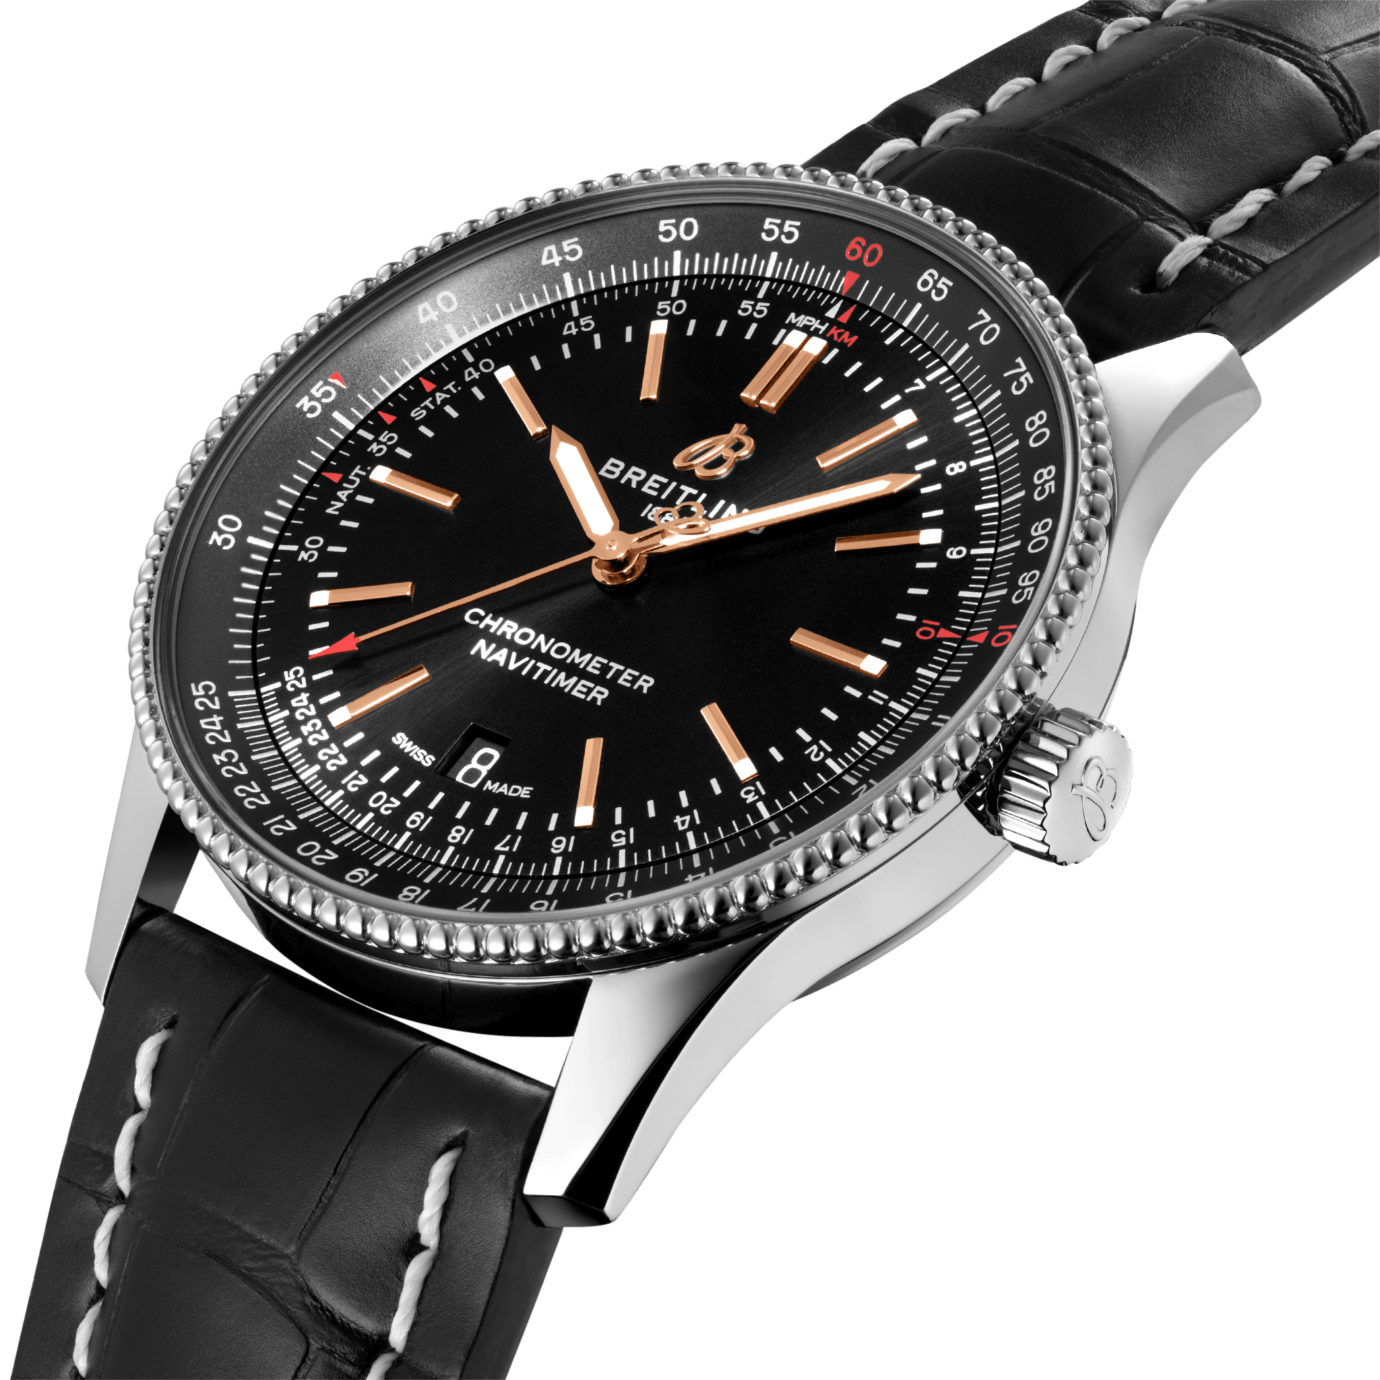 A17326241B1P1 Breitling BREITLING Navitimer Automatic 41